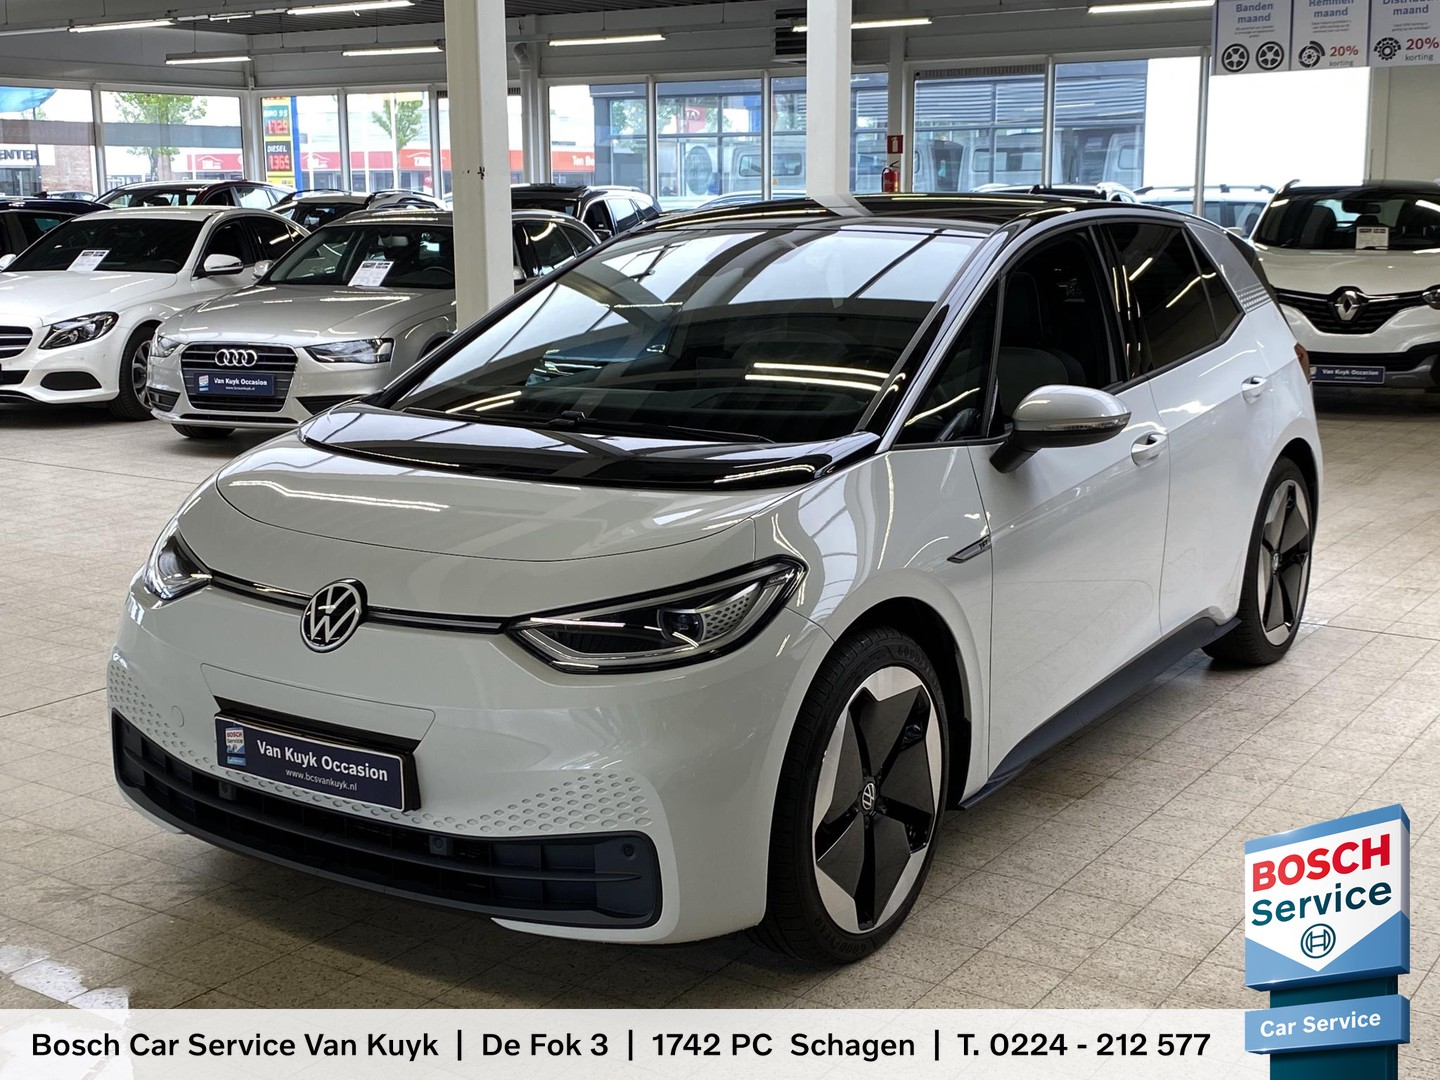 Volkswagen Id.3 First max 58 kwh 8% bijtelling / 5700 km / led / pano dak / navigatie / climate control / cruise control / stoel verwarming / pdc / enz.